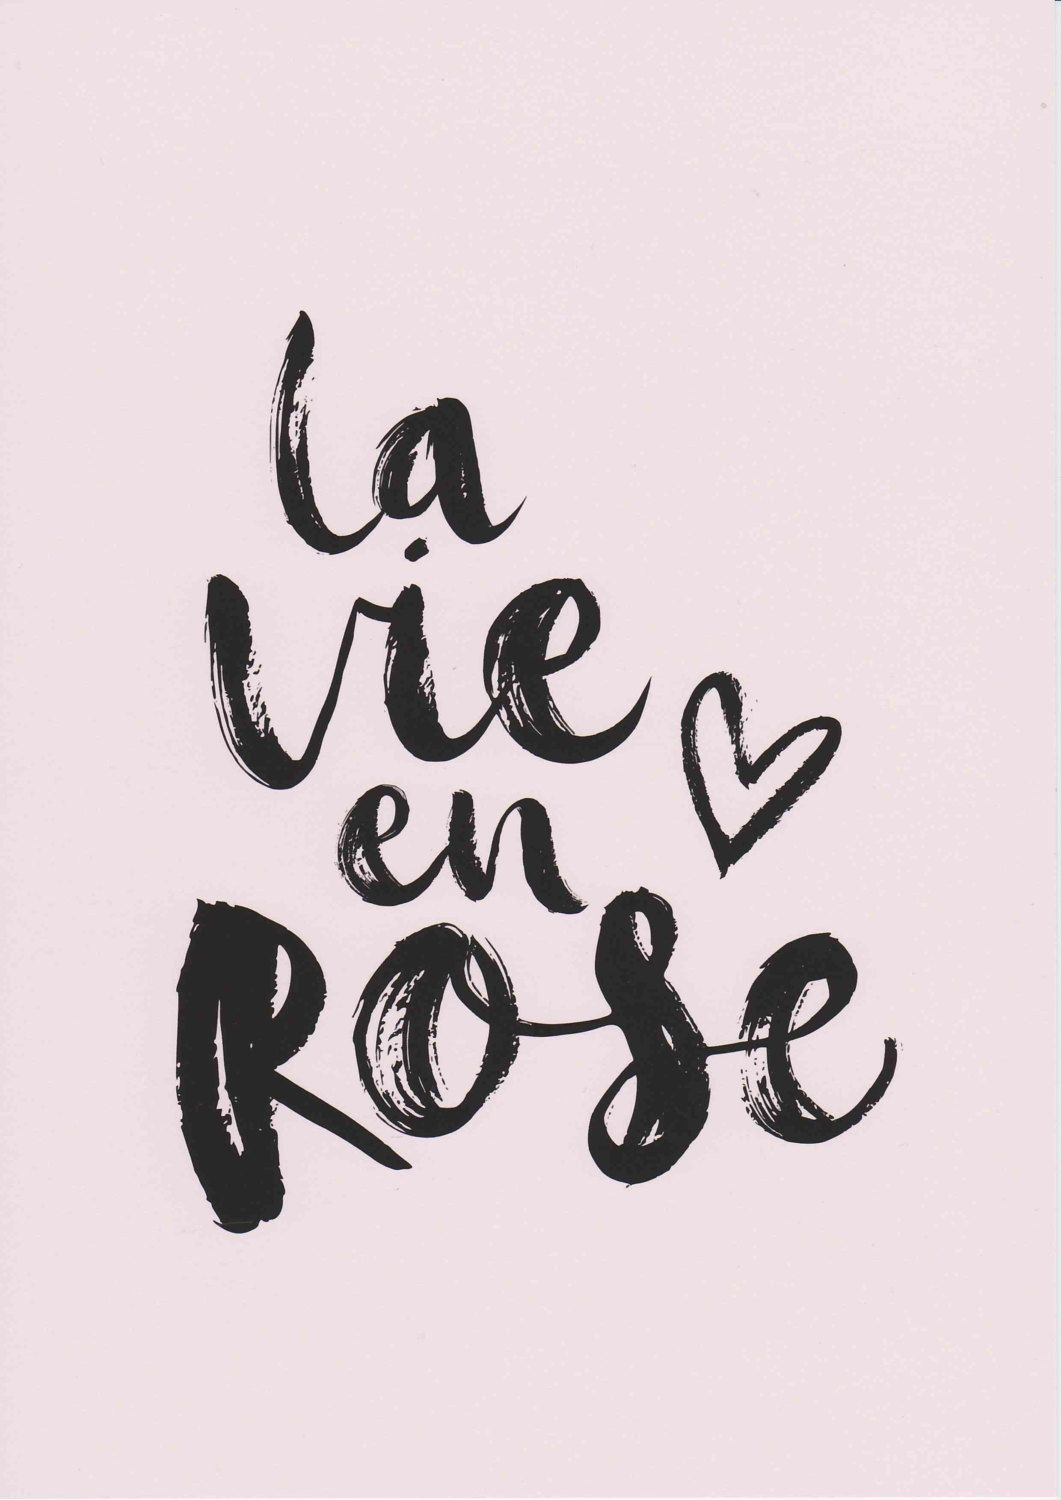 La vie en rose print french prints girls room decor pink wall art la vie en rose print french prints girls room decor pink wall art typography print french amipublicfo Gallery